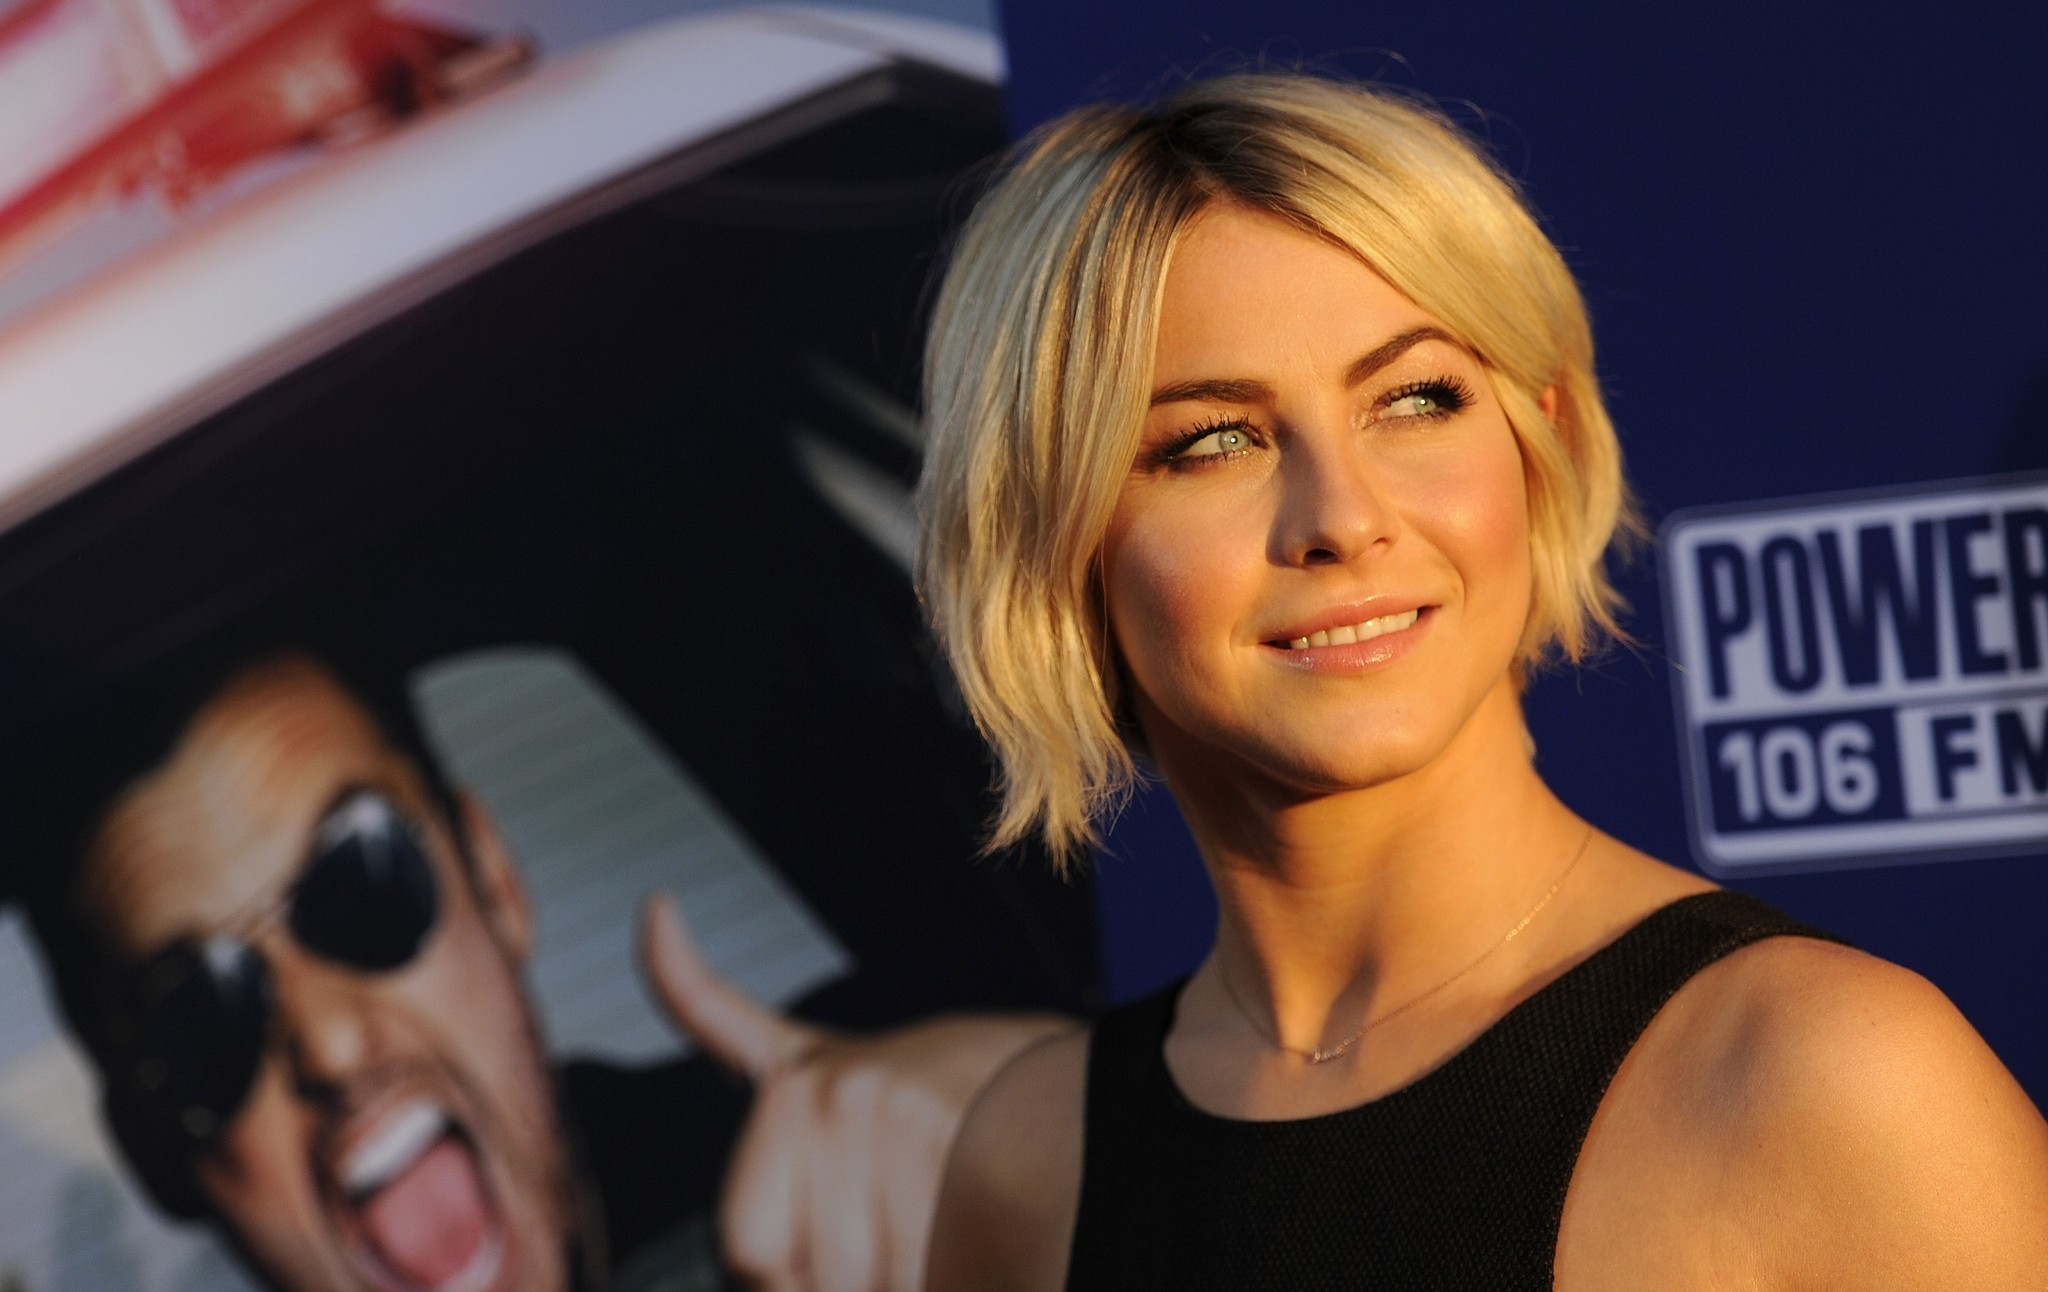 Julianne Hough returns to 'Dancing With the Stars' as a judge